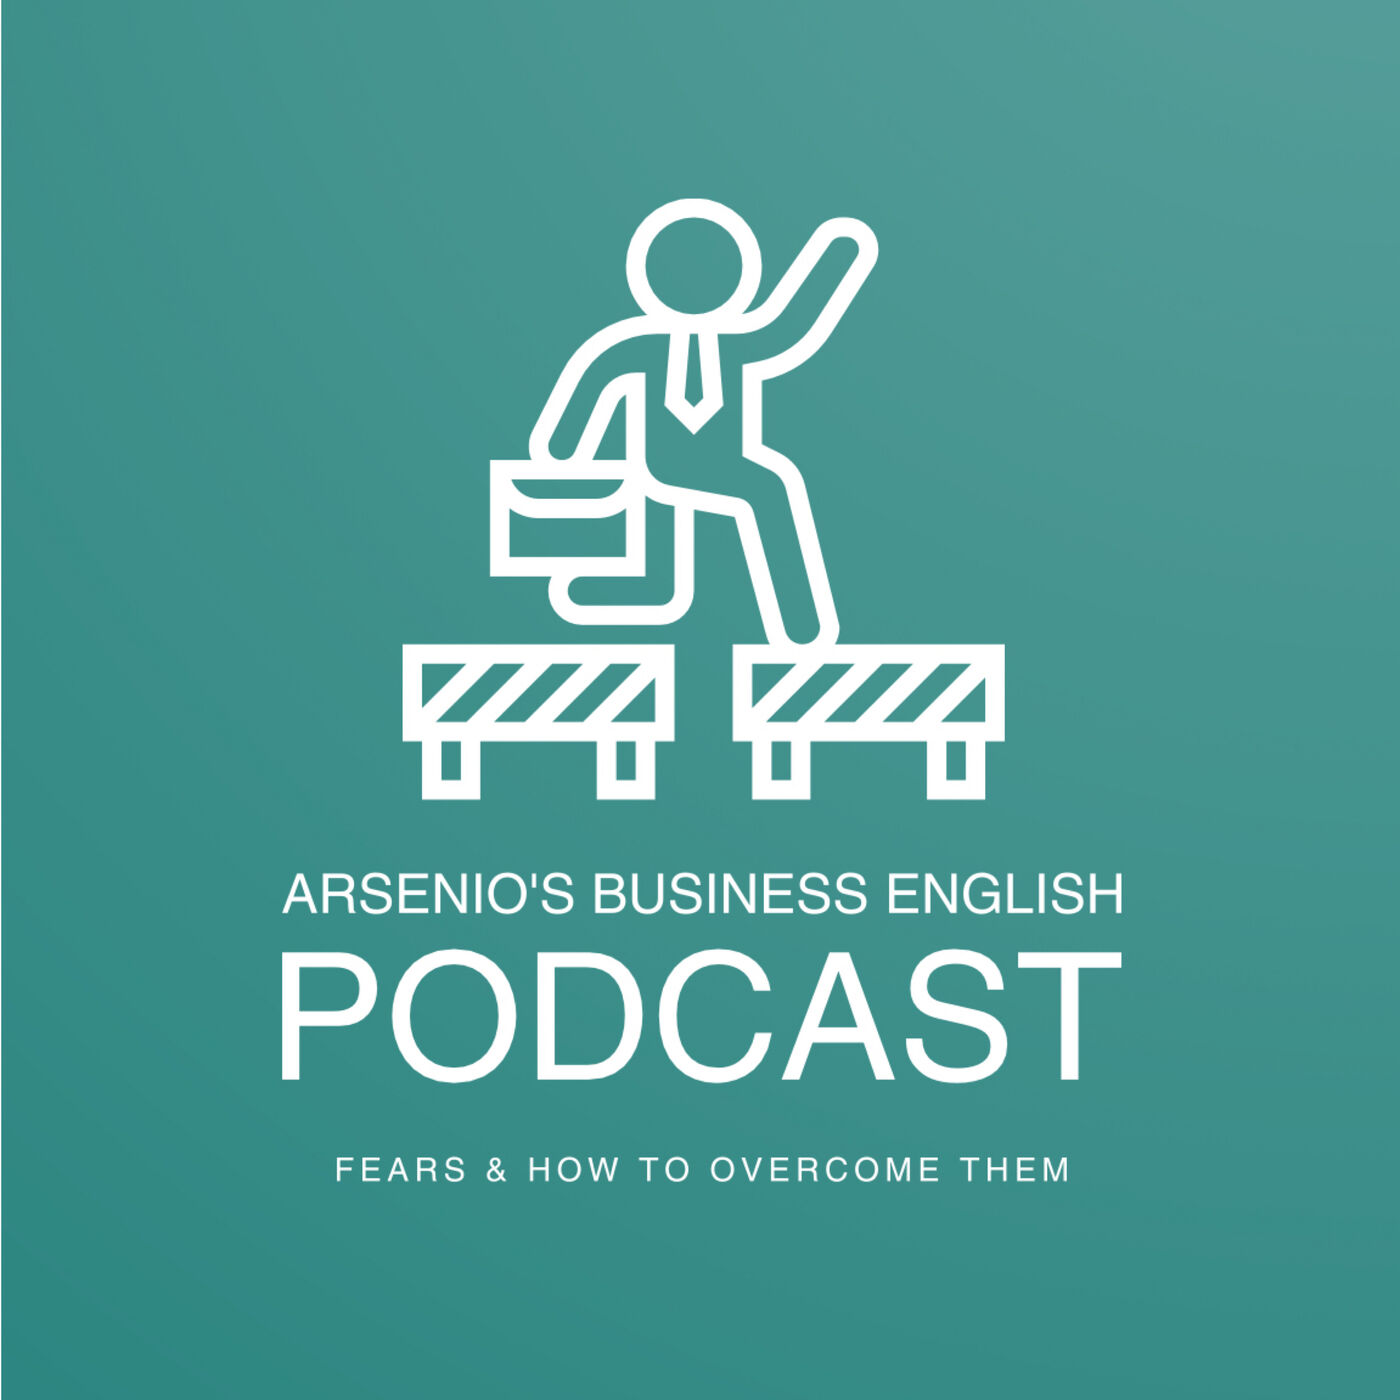 Arsenio's ESL Podcast | Personal Development | Different Types of Fears & How to Overcome Them